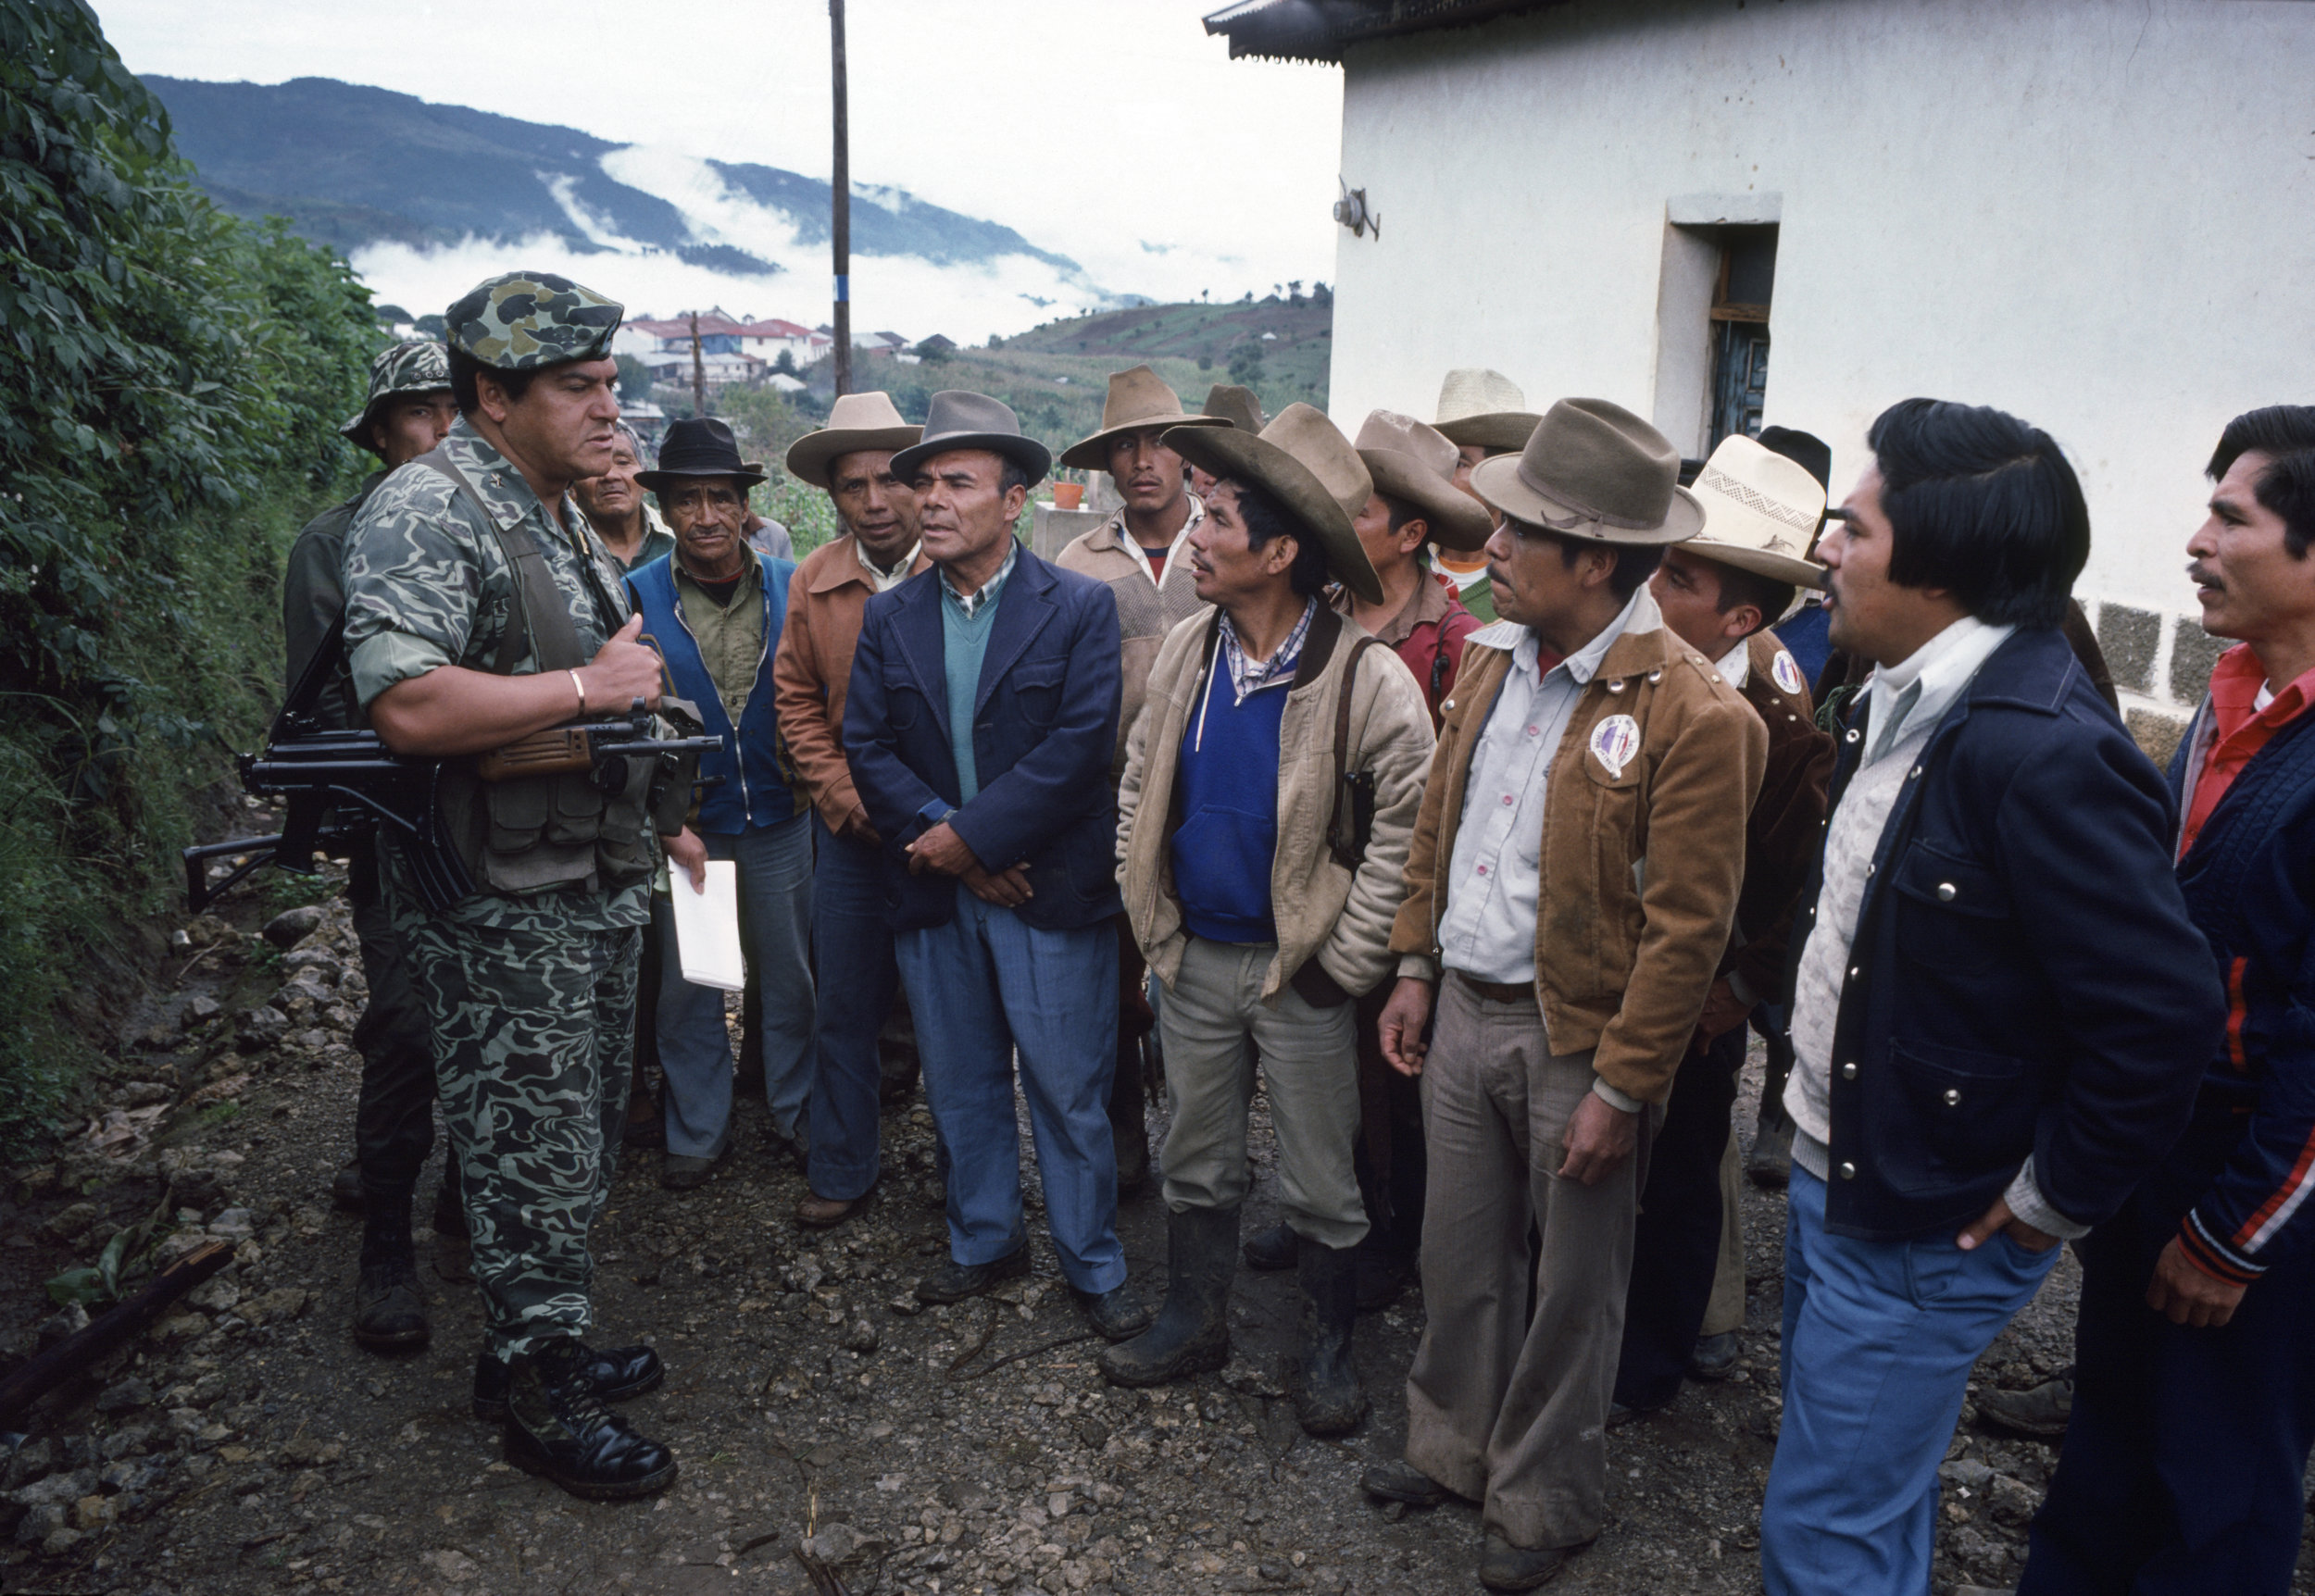 Local male residents listen to a Guatemalan army officer, left, speak about forming Civil Defense Patrols to secure their villages against leftist guerrilla attacks near Huehuetenango, Guatemala on October 1, 1982. The Patrols effectively institutionalized military power at the local level by infiltrating and dissolving community loyalties and reorienting them to serve counterinsurgency efforts. They served a critical role in the systemic violence, inequality, and militarization of the domestic armed conflict.